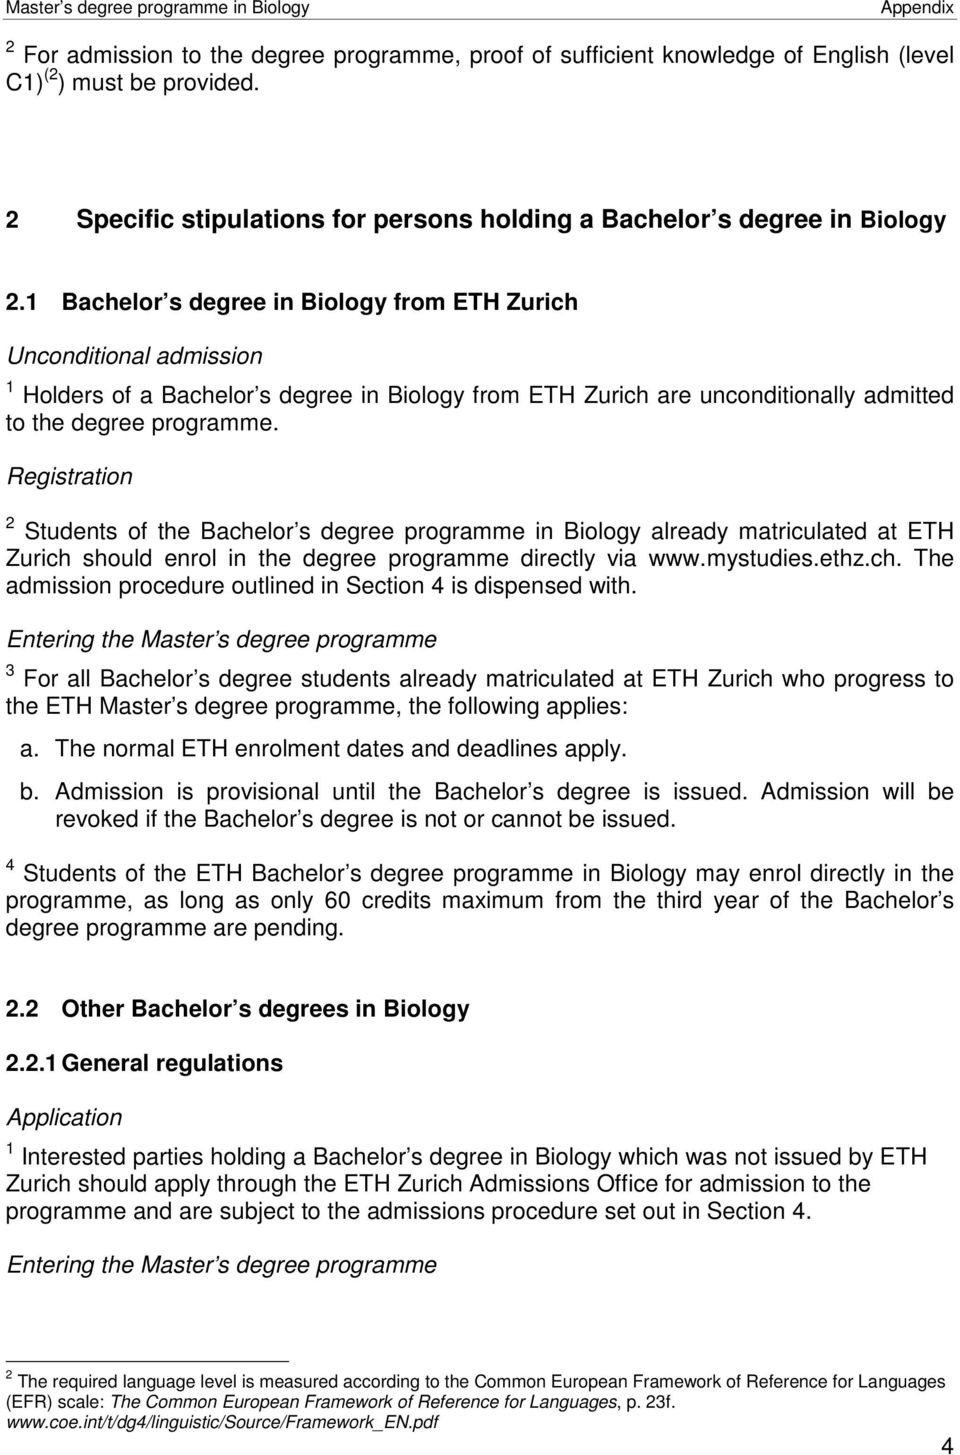 Registration 2 Students of the Bachelor s degree programme in Biology already matriculated at ETH Zurich should enrol in the degree programme directly via www.mystudies.ethz.ch. The admission procedure outlined in Section 4 is dispensed with.